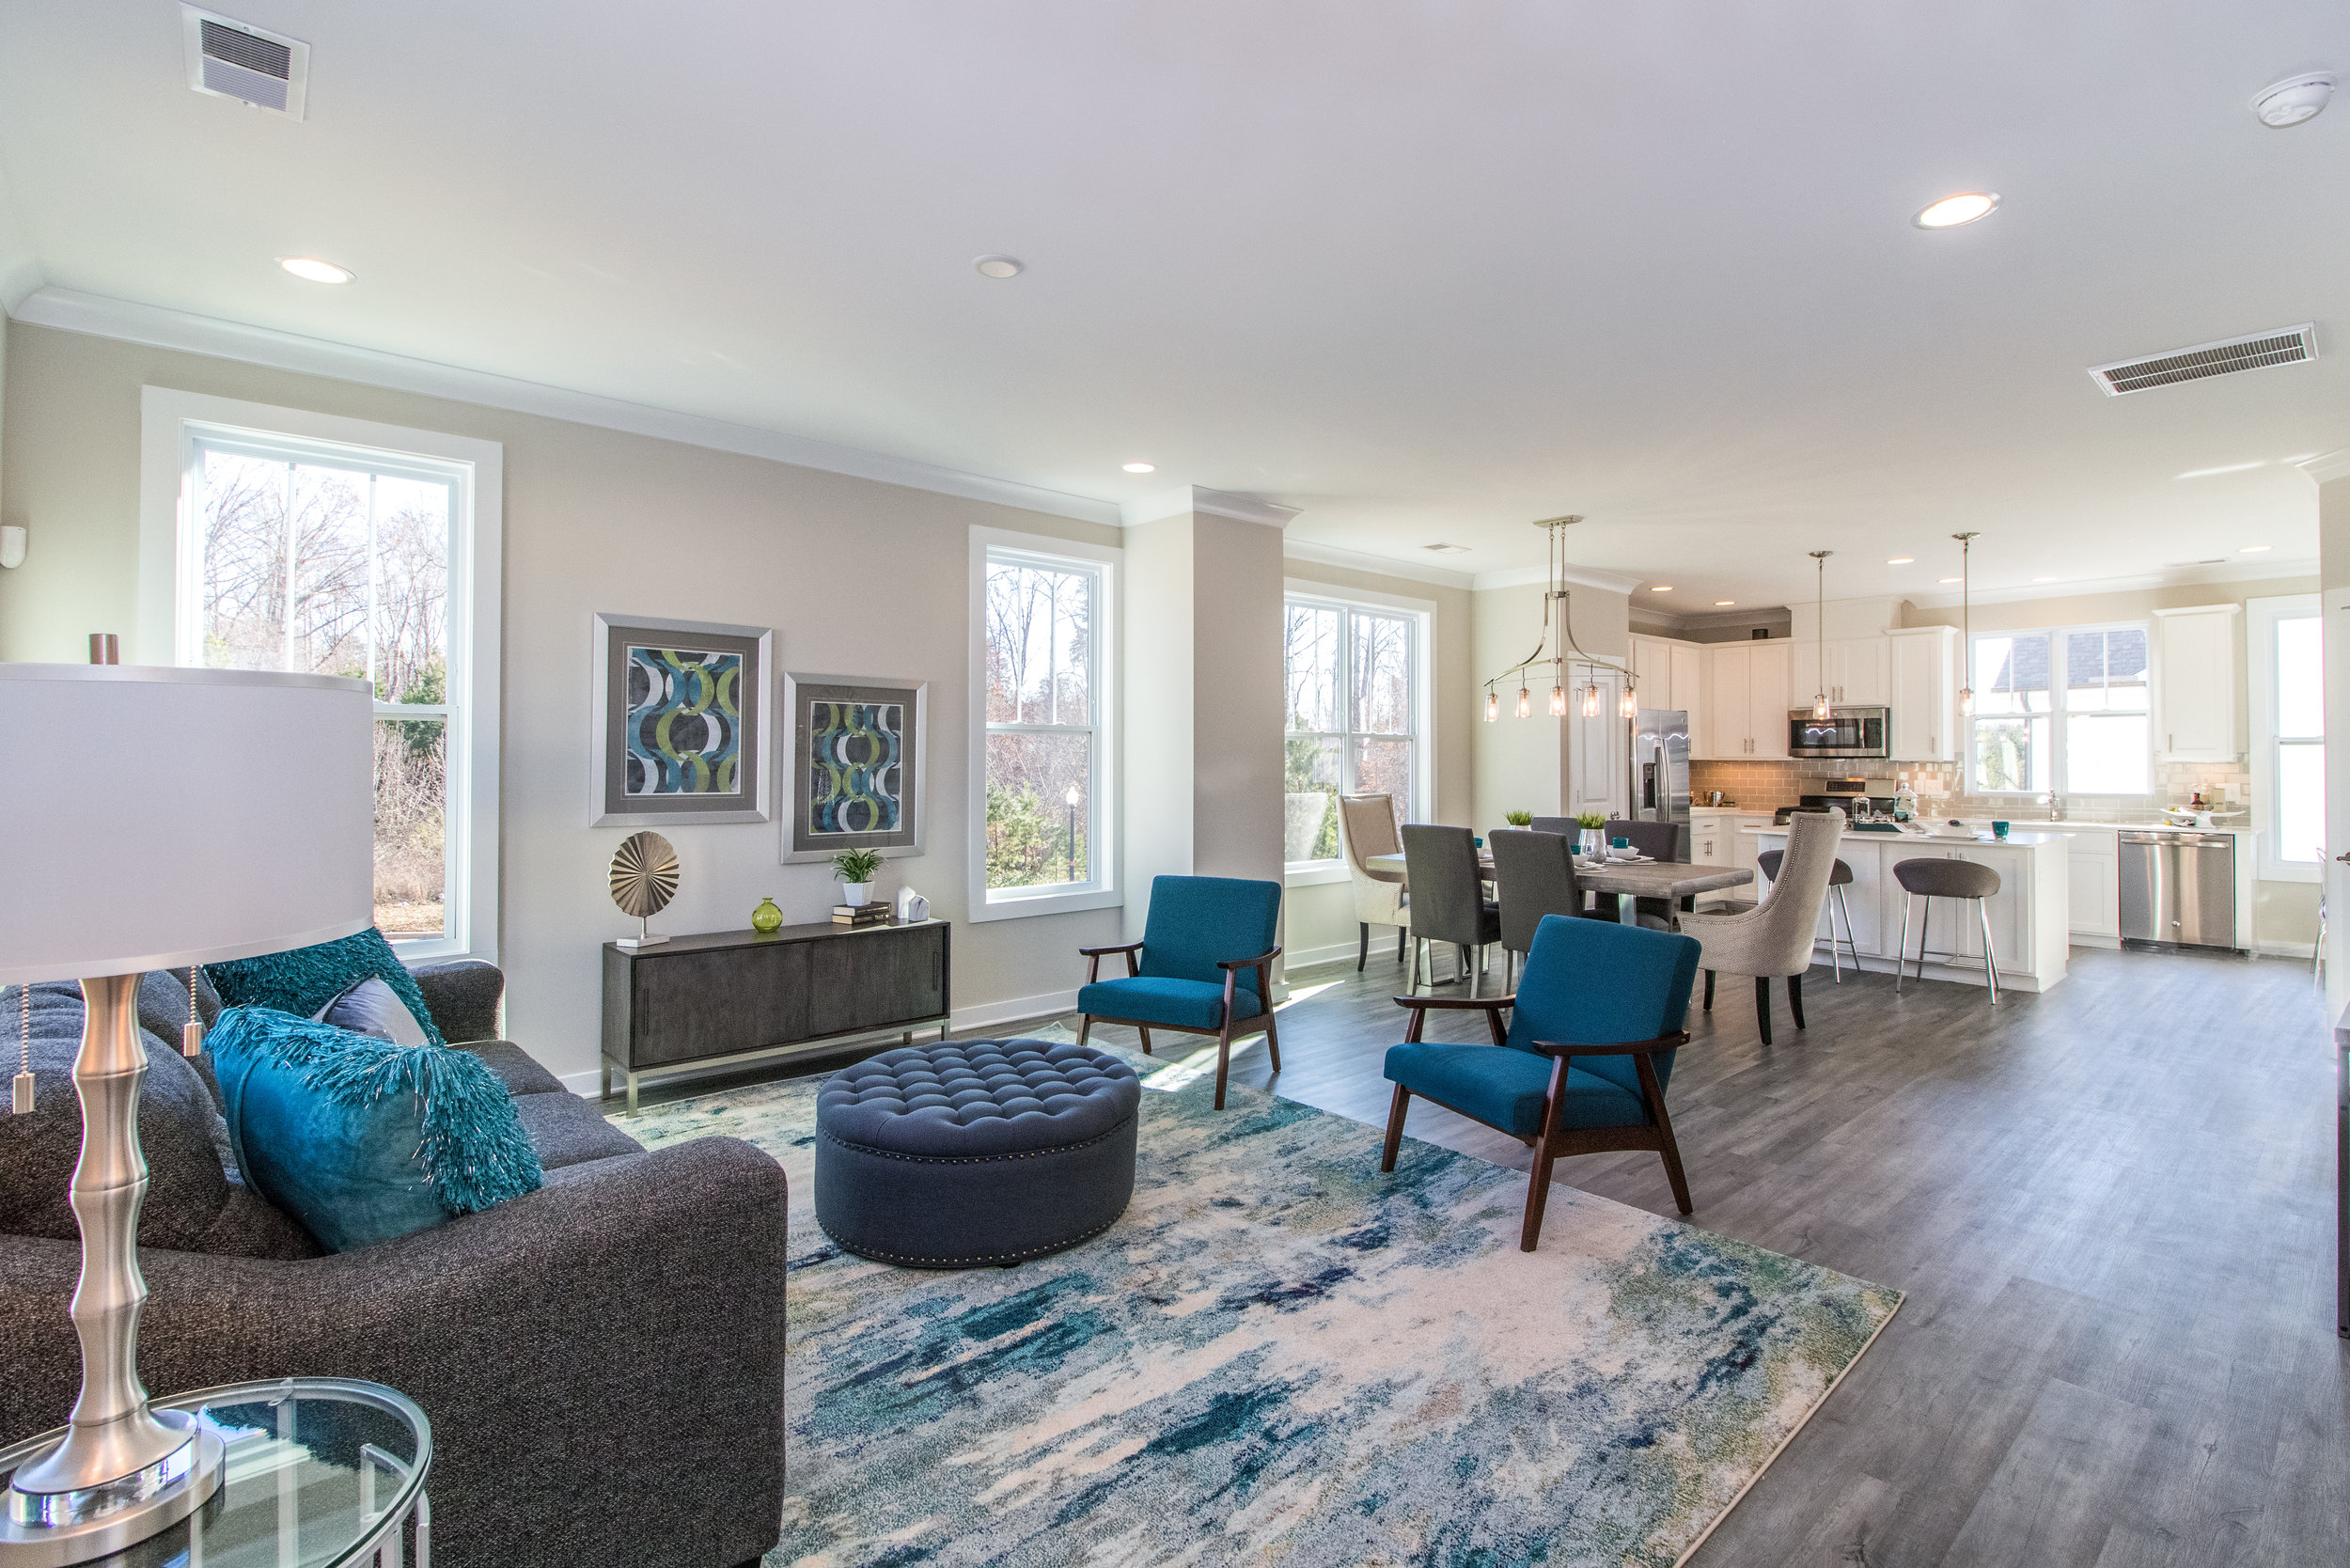 The Avenues at Ayrsley by Meeting Street - Why rent when you can own a brand new town home, customized to match your style, in the great location of Ayrsley. Choose from a 2 or 3 bedroom floor plan, many with all brick exteriors, all with attached garages.